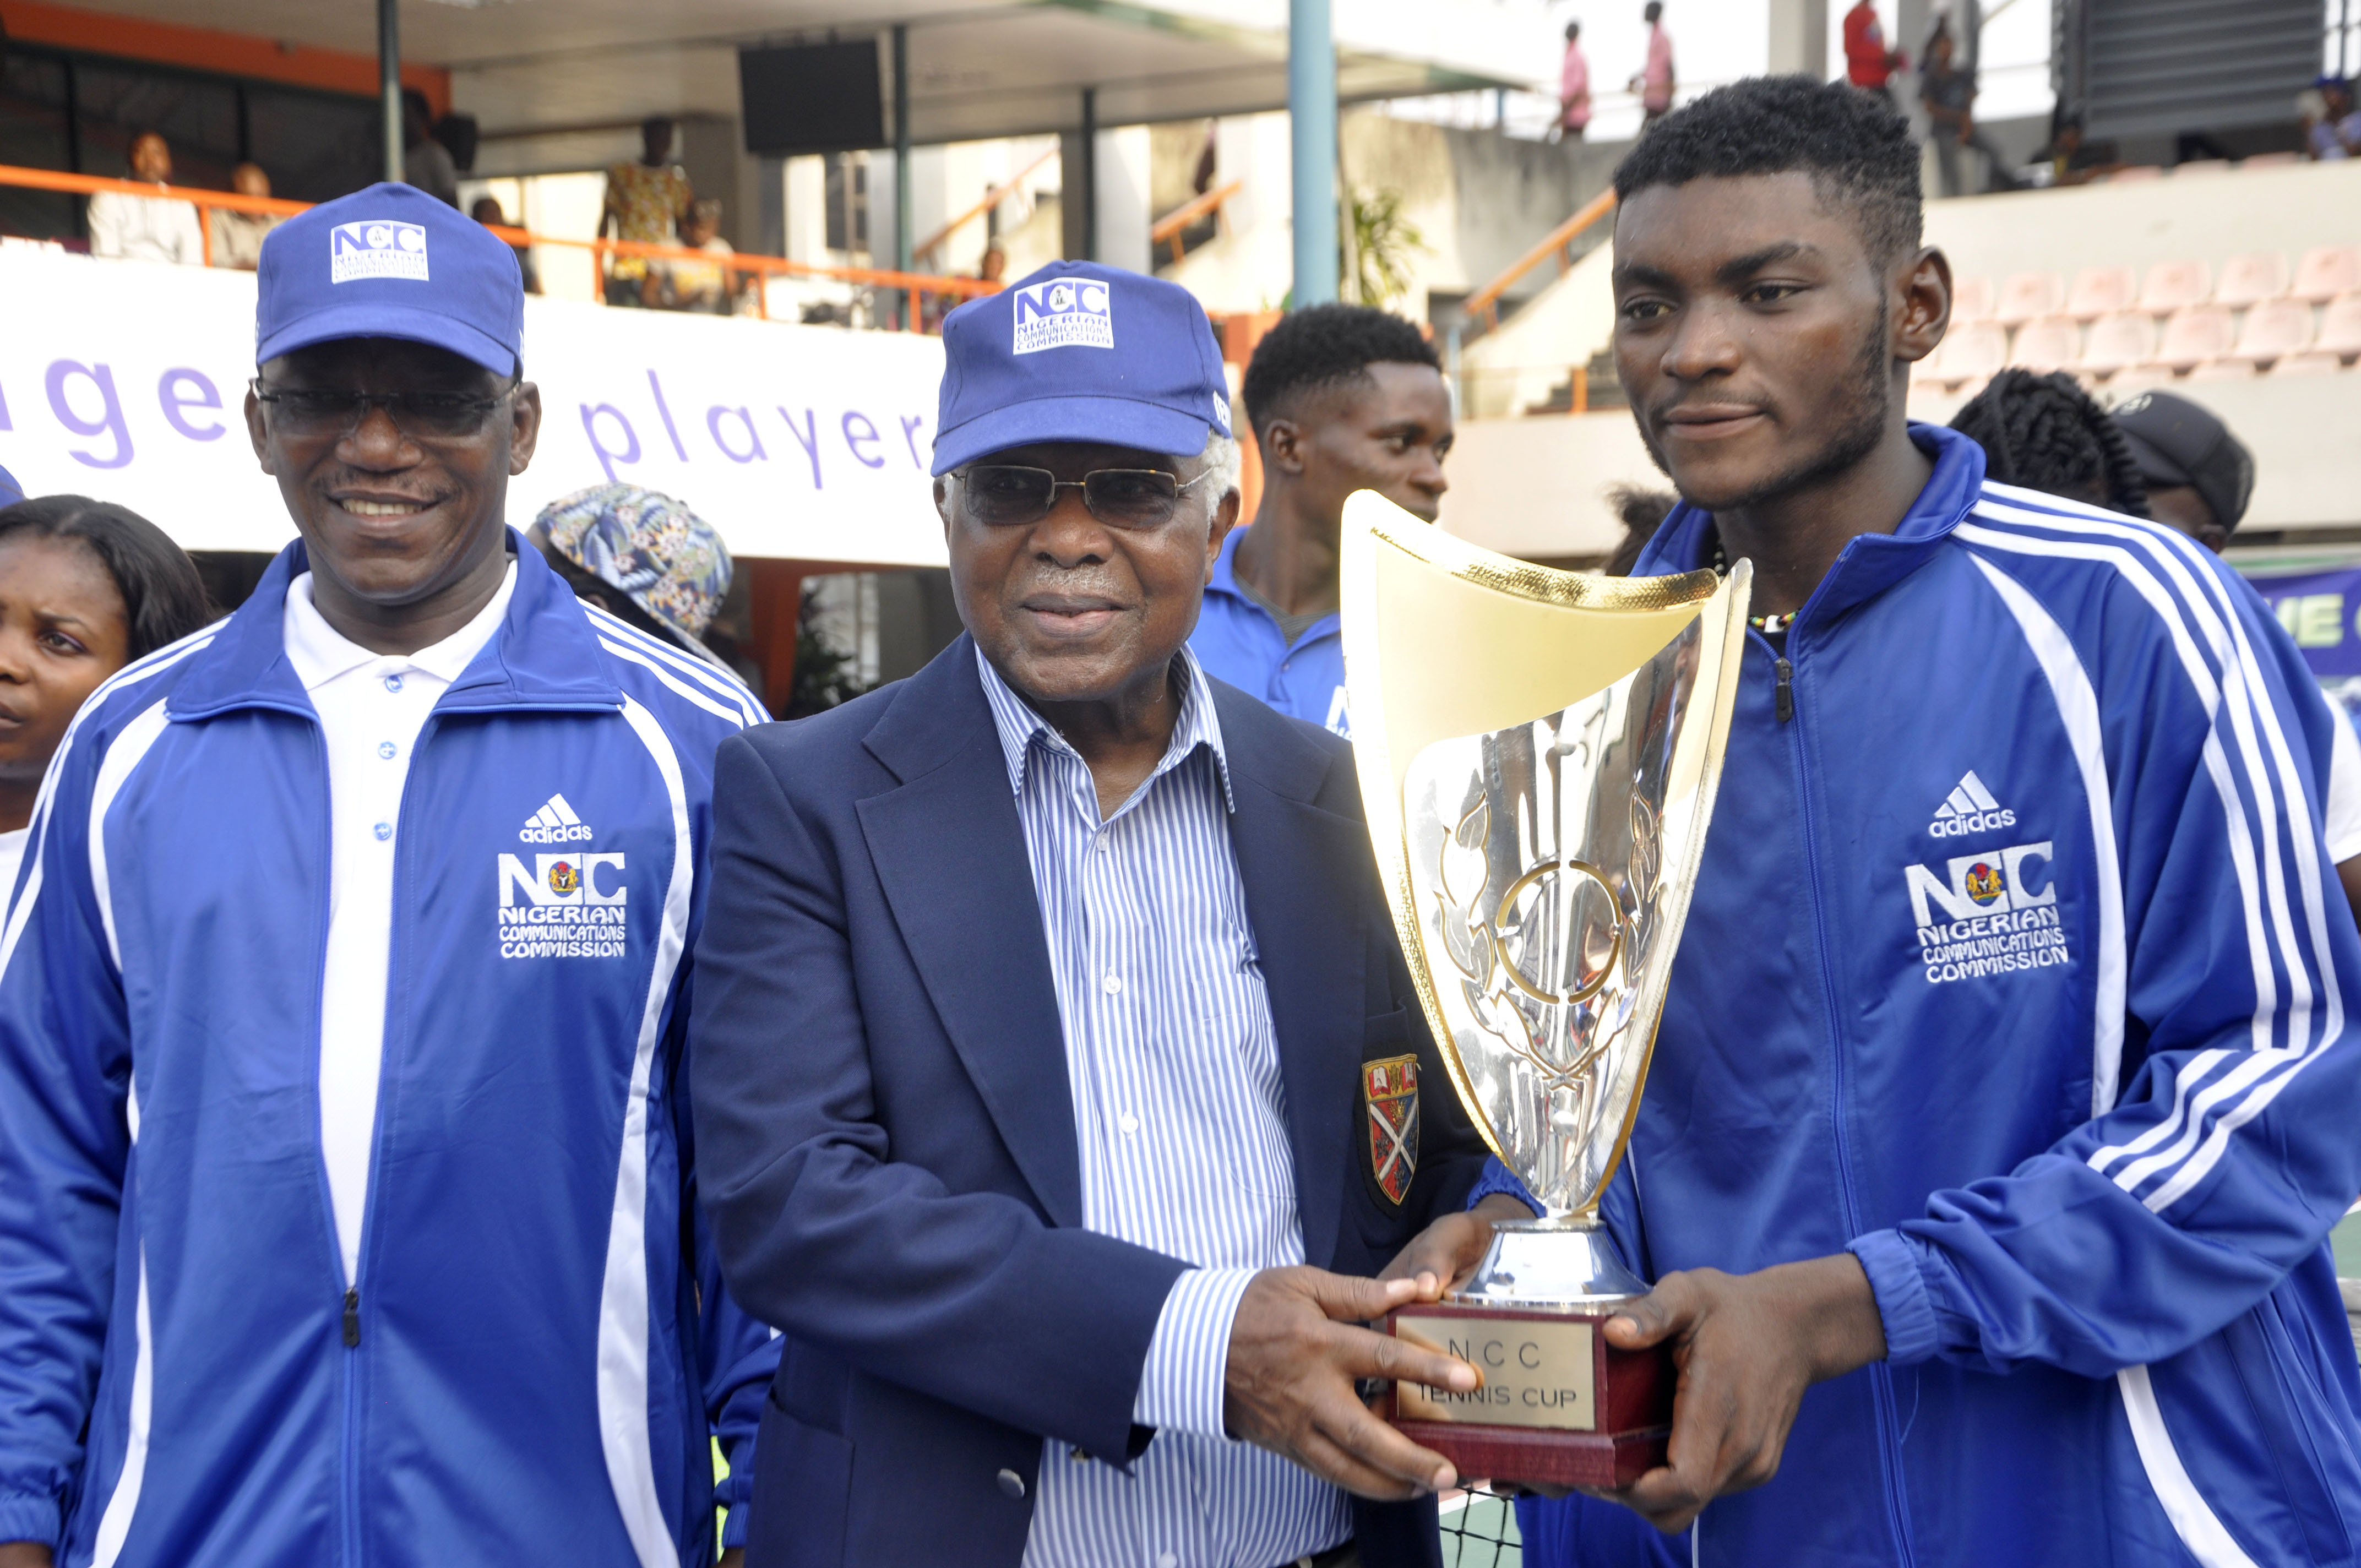 NCC tennis league: Opening, draws ceremony for Friday 30th June